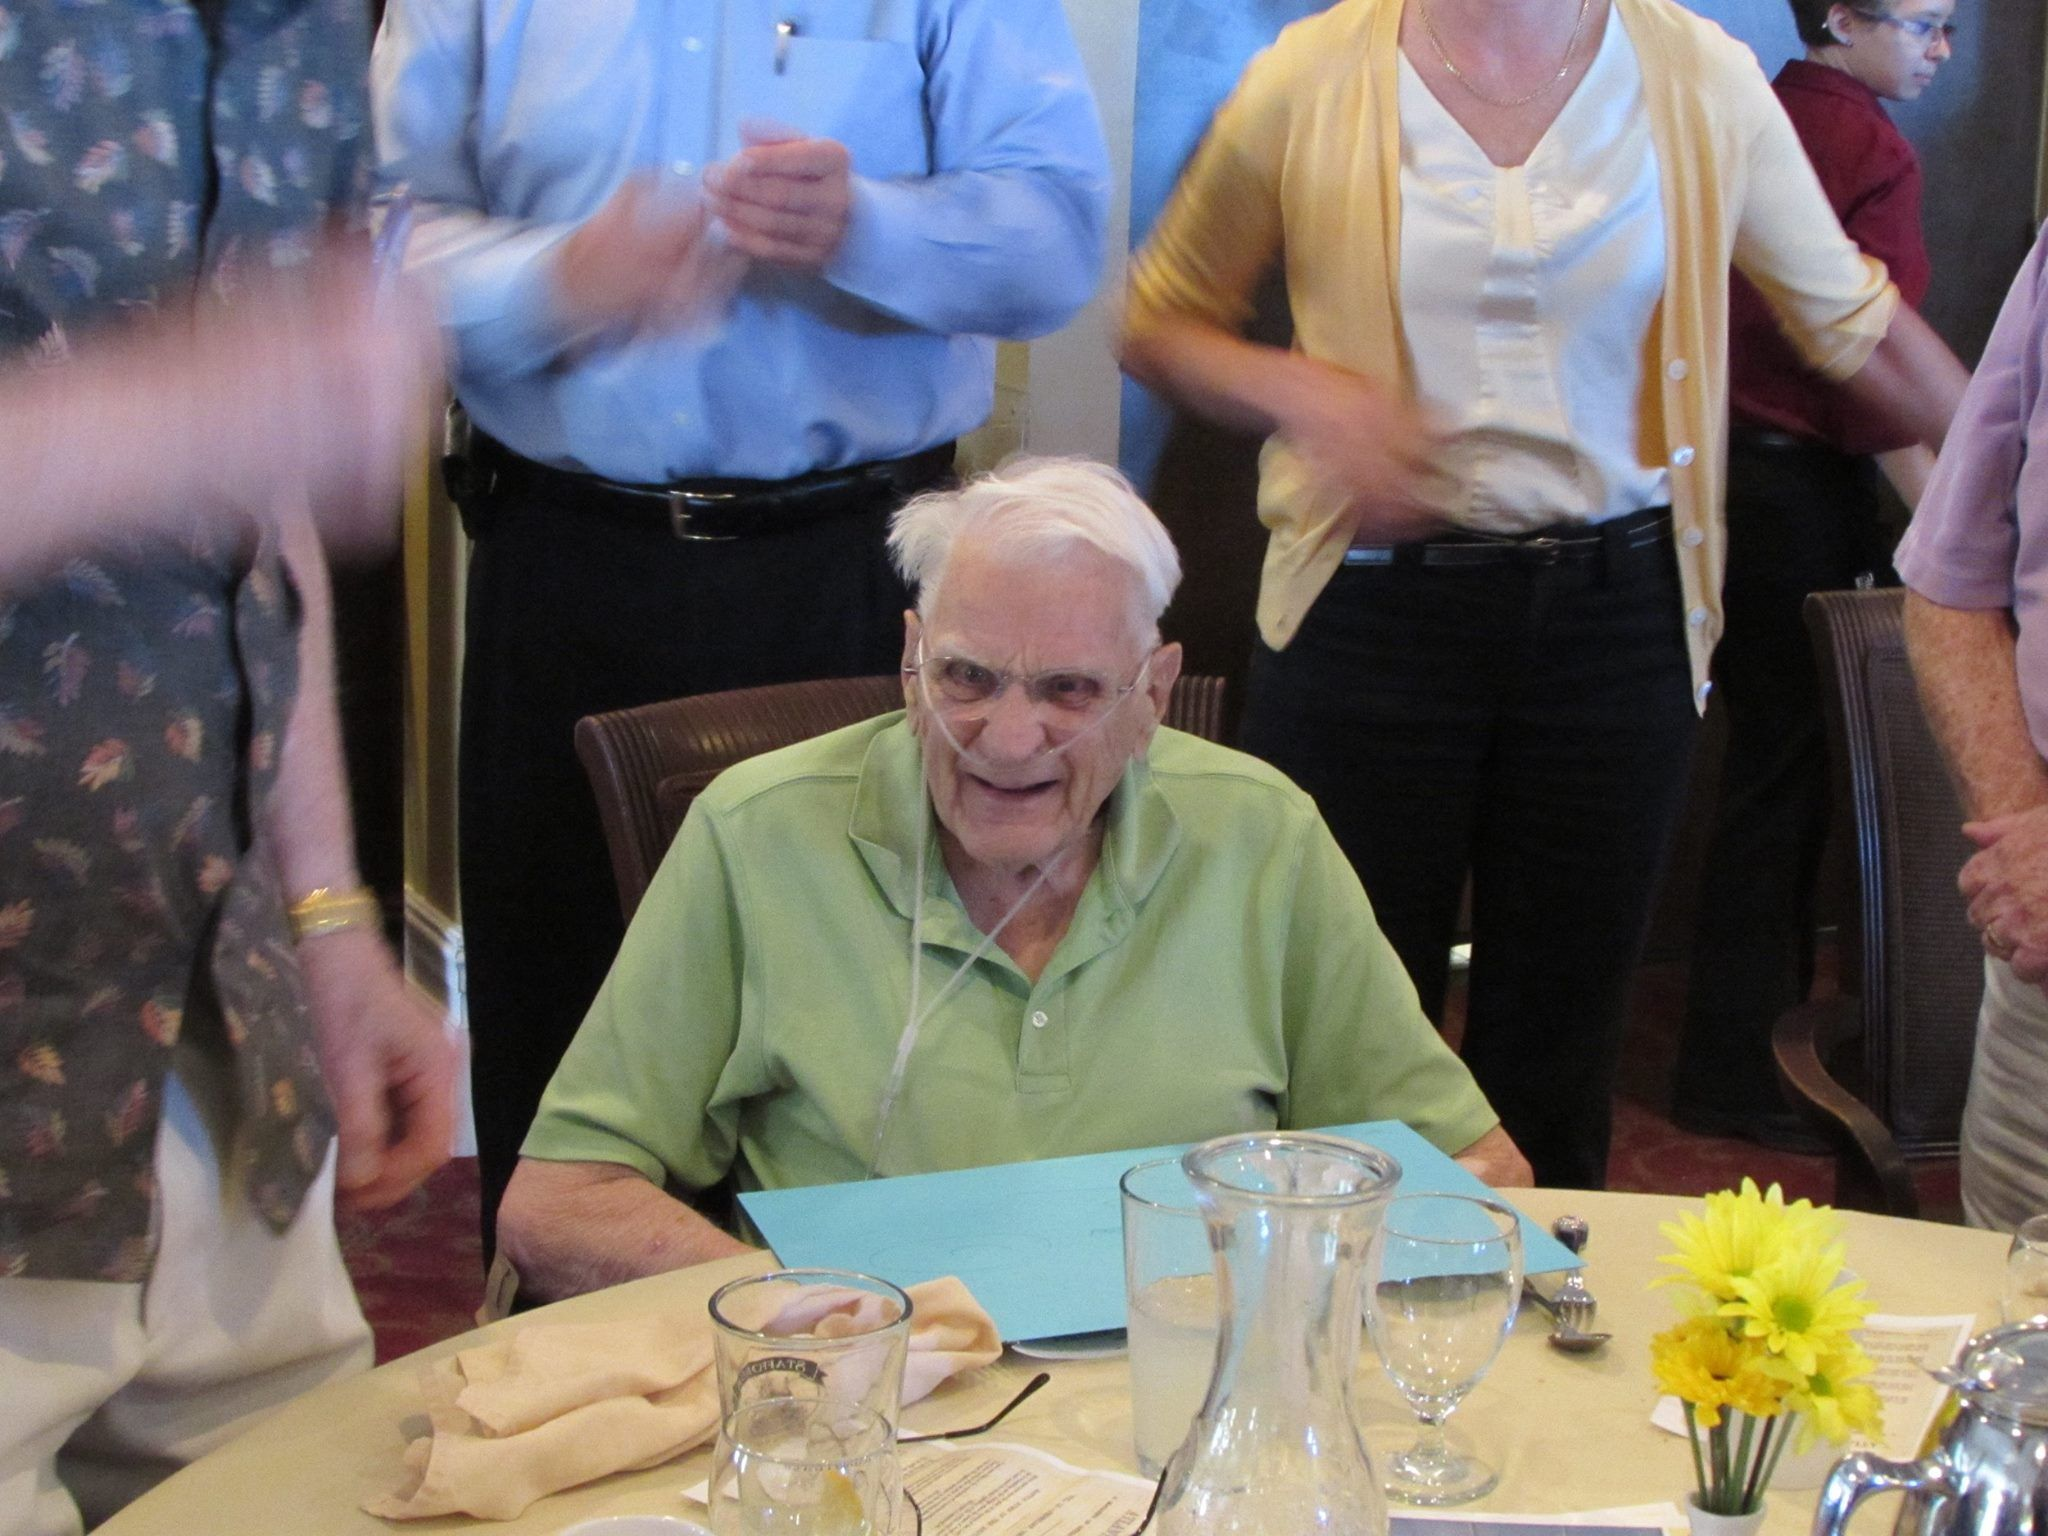 Doctor Dick McMurray celebrating his 93rd birthday with family and friends at Rotary Club of Petoskey. — at Stafford's Perry Hotel.